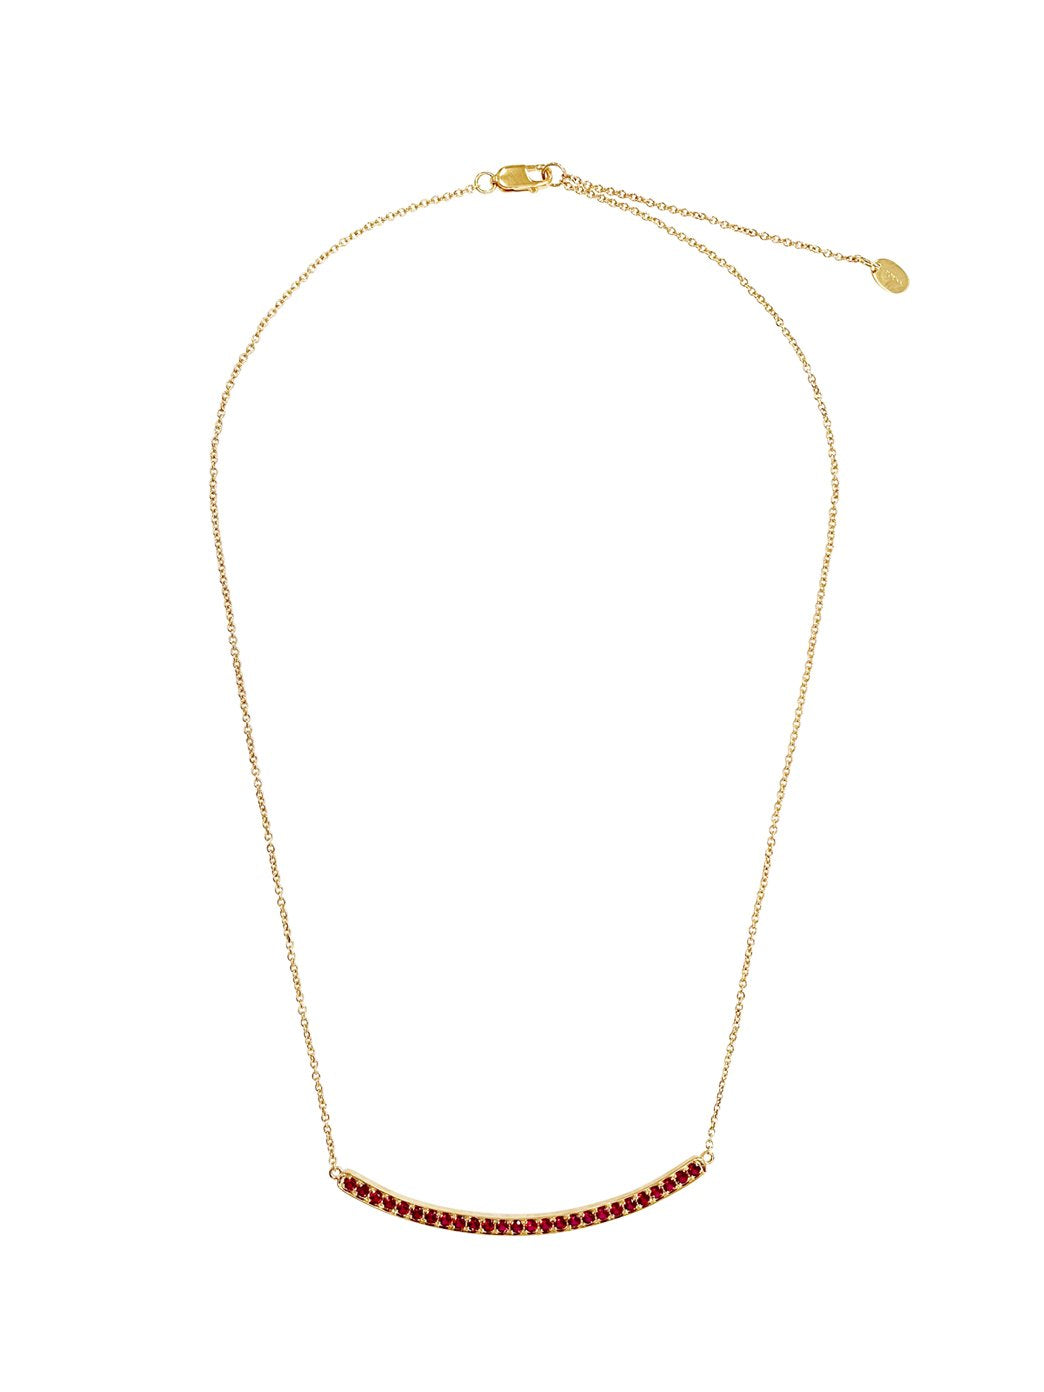 Fiorina Jewellery Arc Necklace Yellow Gold Ruby